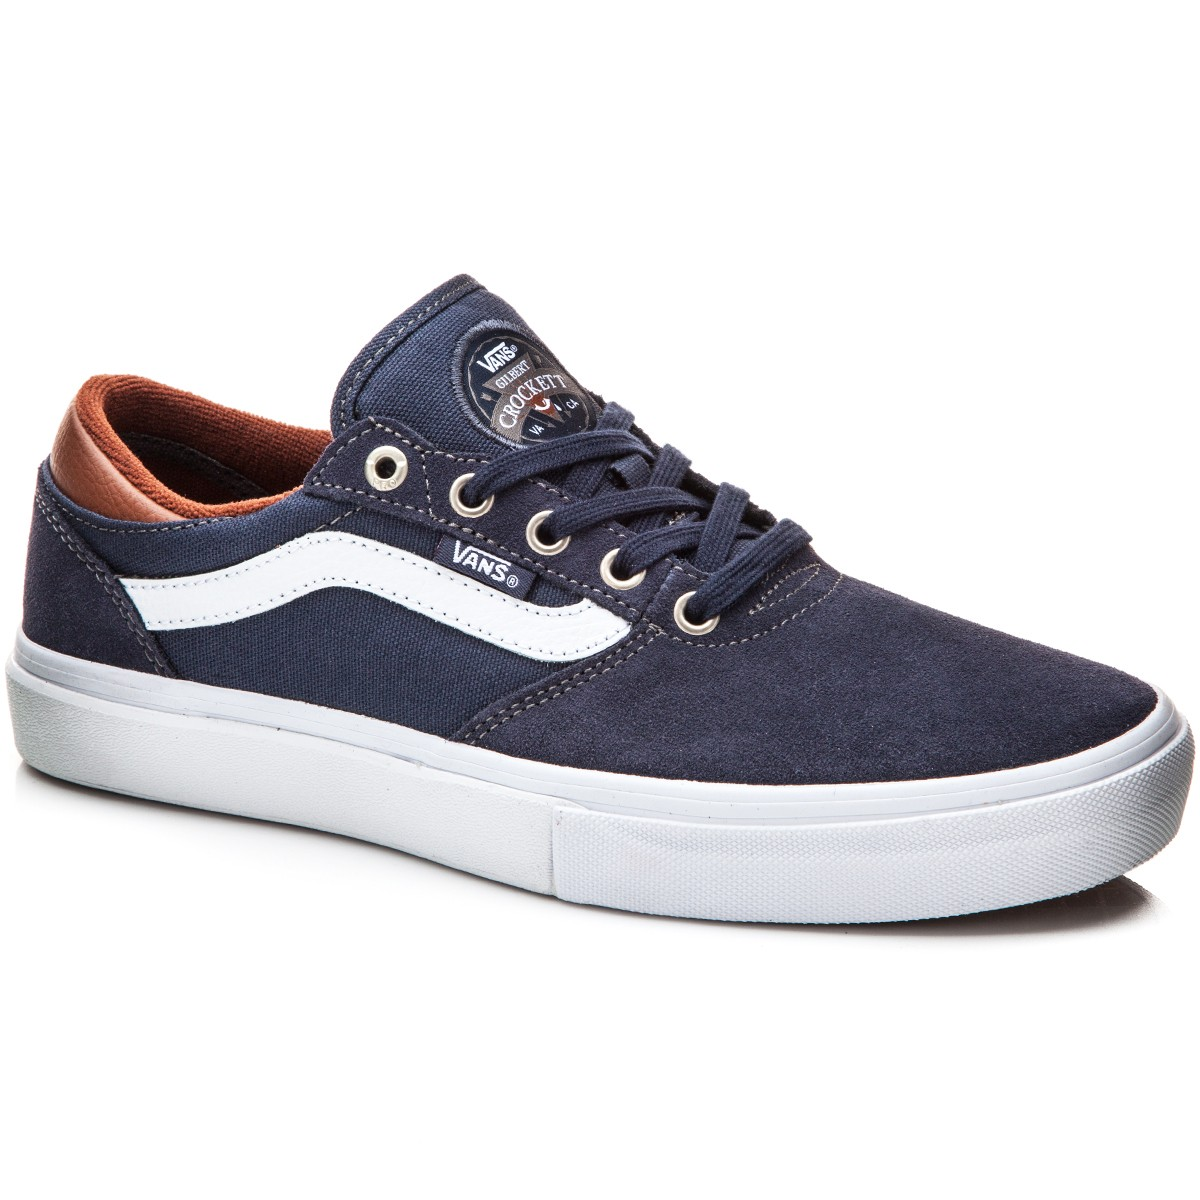 Vans Gilbert Crockett Pro Shoes - Navy/White/Leather